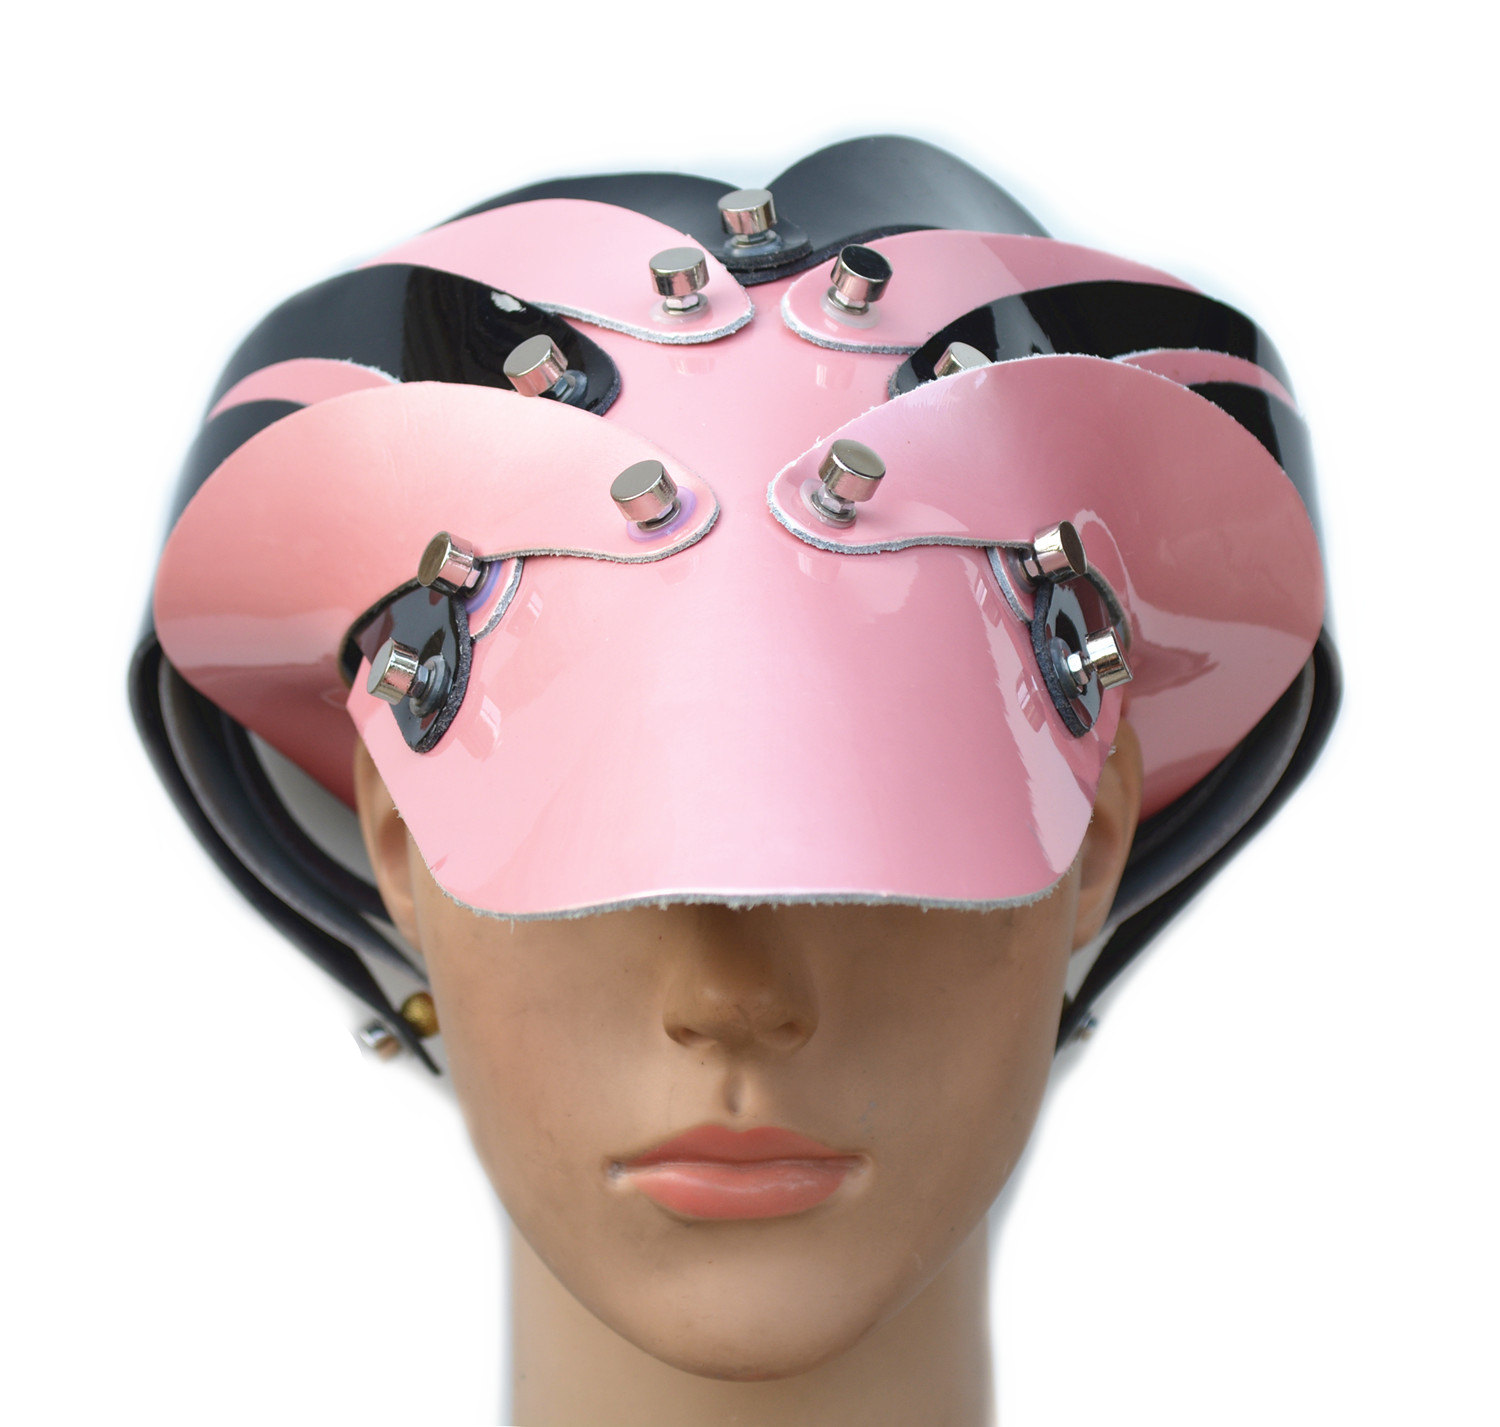 futuristic head wear, visor, unusual, Cosplay, costume hat pink shiny leather